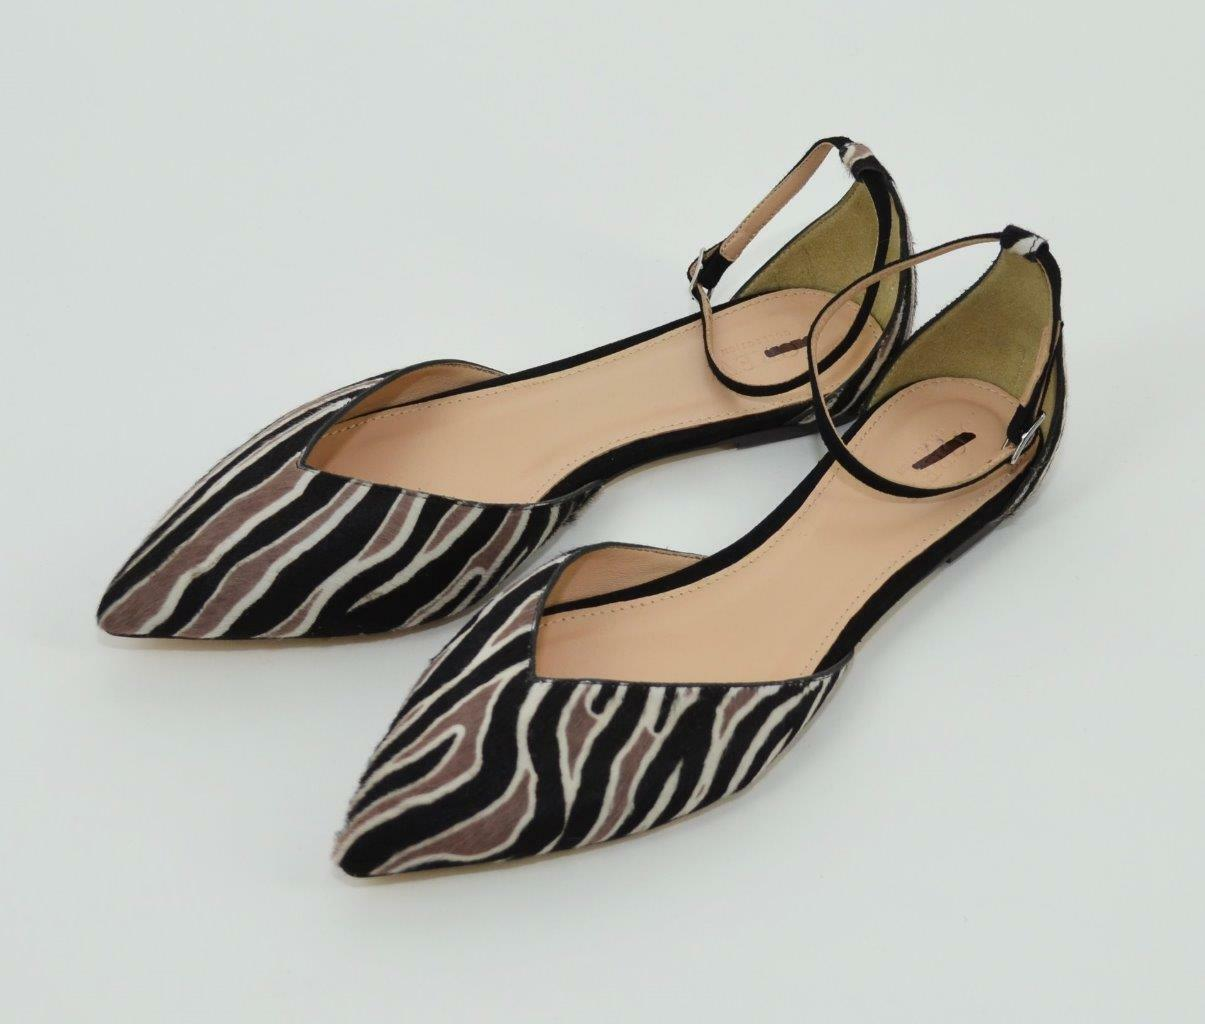 J.CREW COLLECTION $198 SADIE ZEBRA CALF HAIR ANKLE STRAP FLATS 10 BLACK F7988